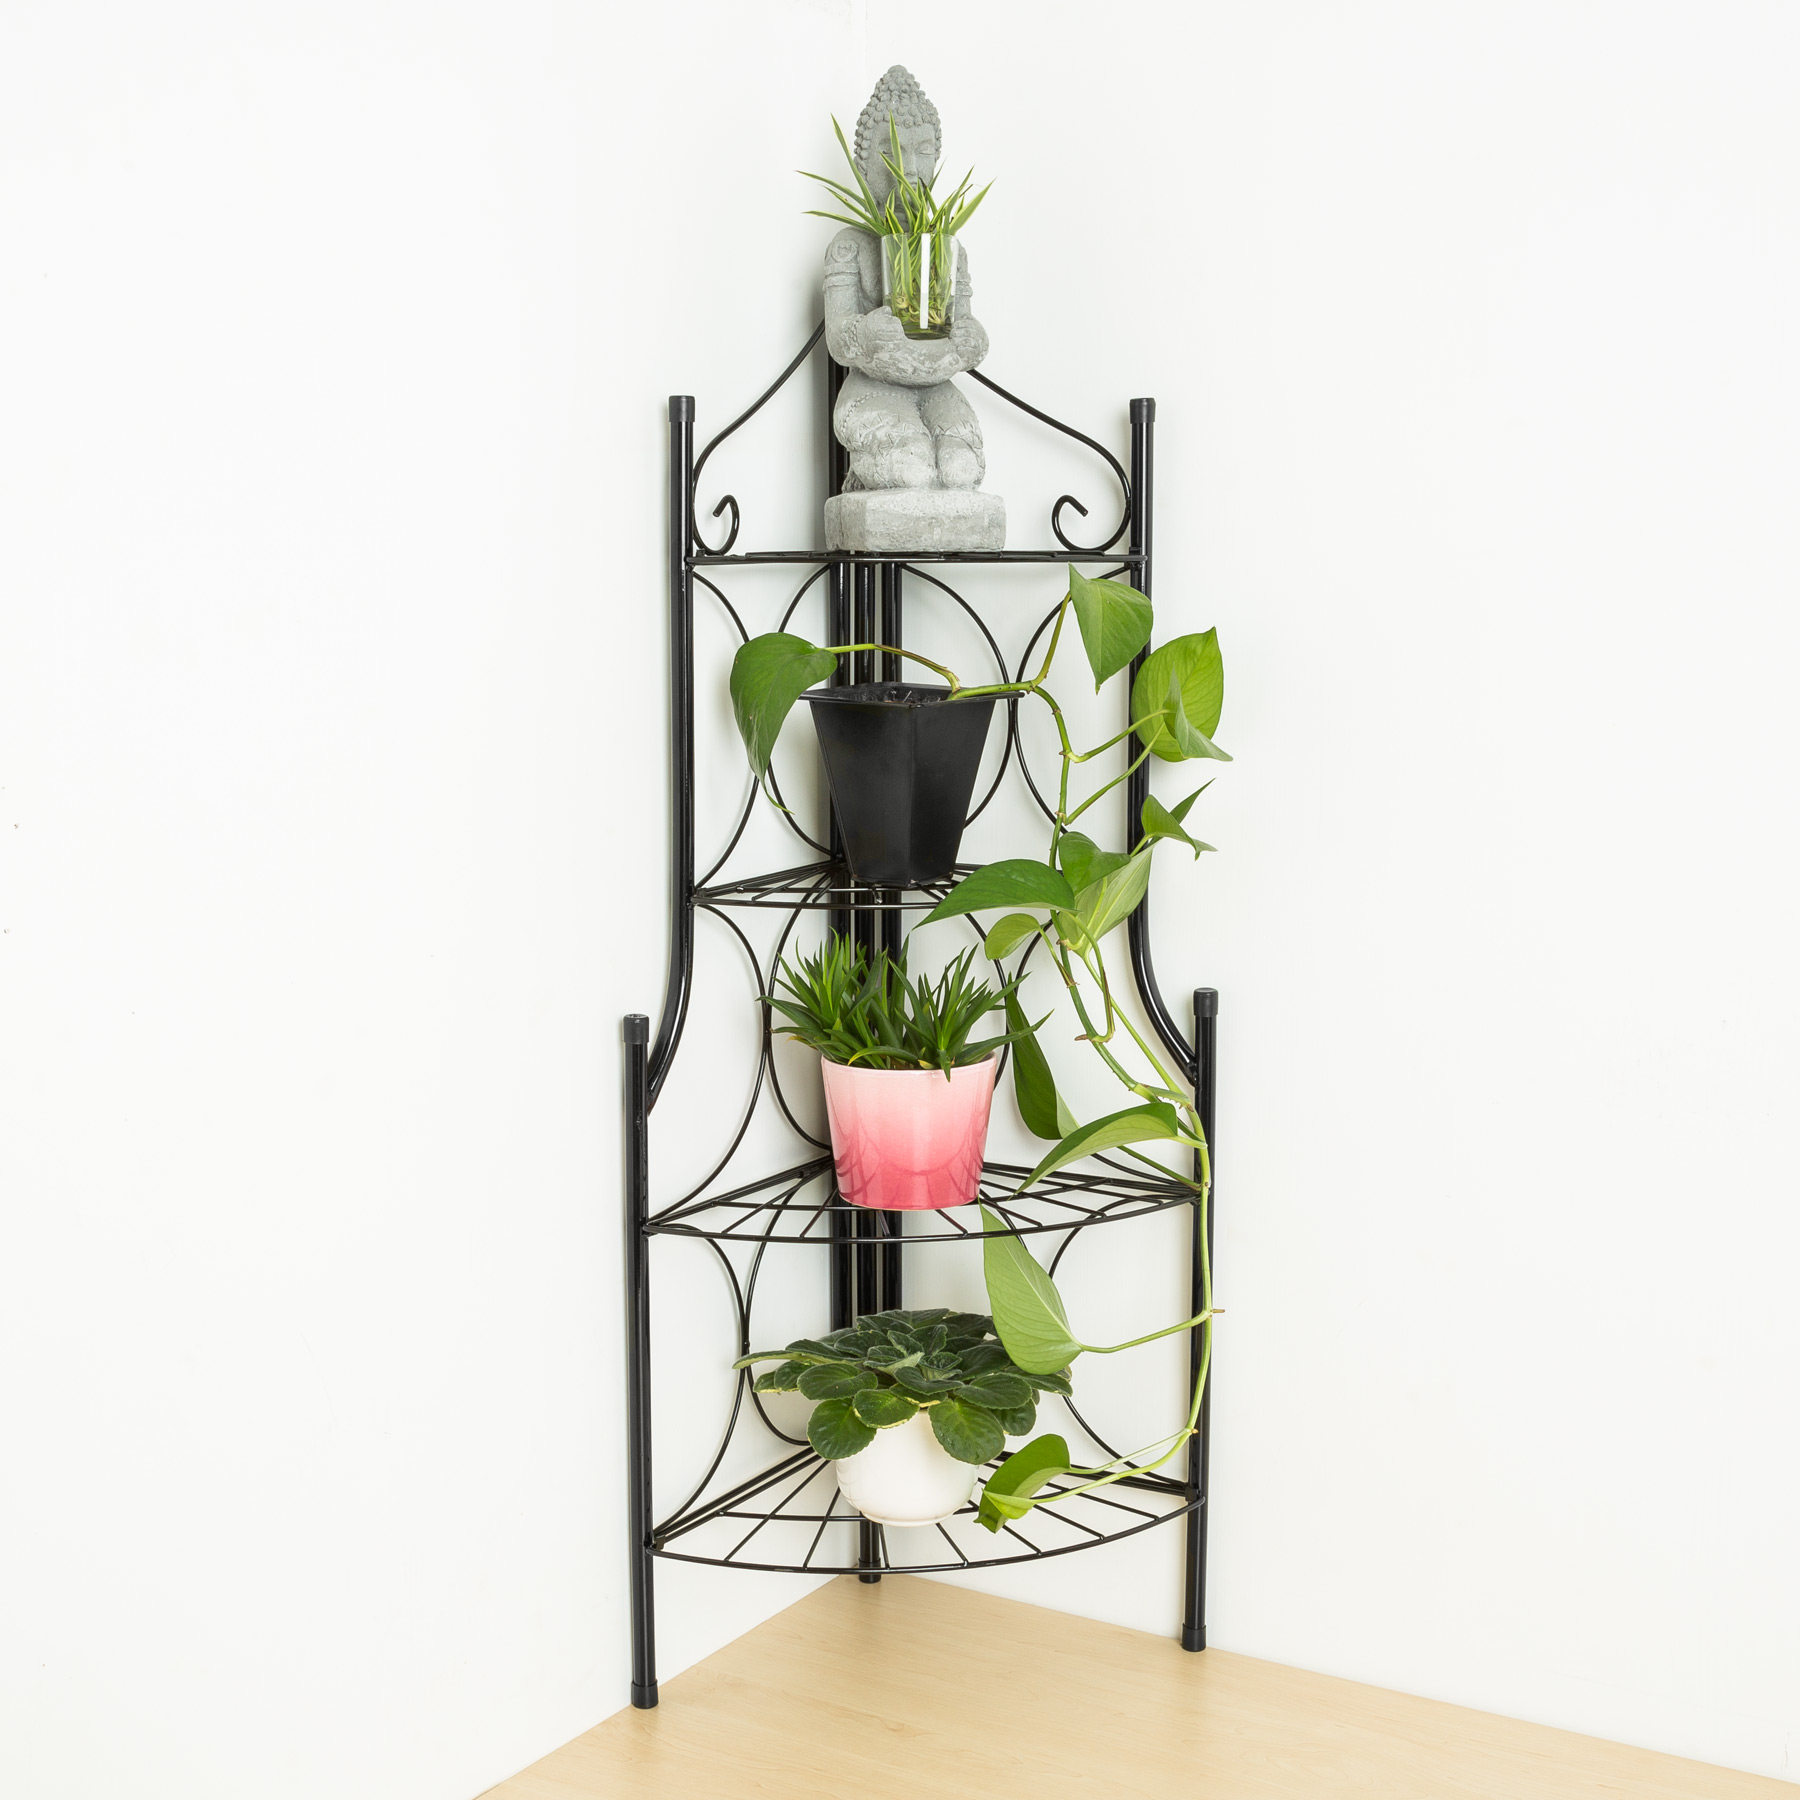 4 tier metal garden plant pot display shelf stand flower patio deck in outdoor ebay. Black Bedroom Furniture Sets. Home Design Ideas